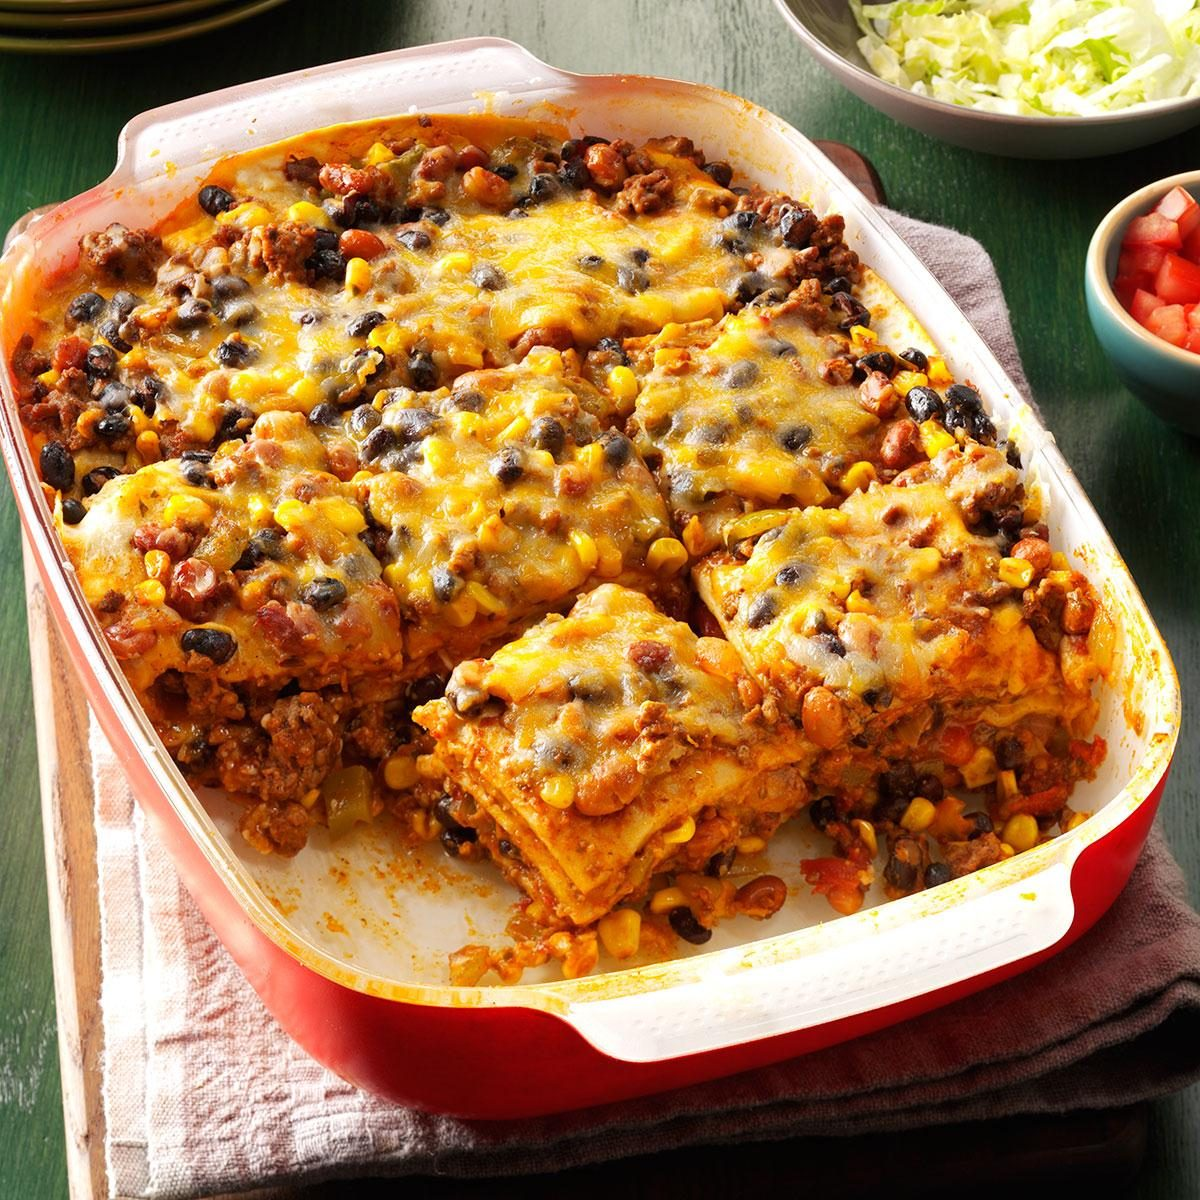 Chicken Casserole Recipes Go quick and easy with one of our best chicken casserole recipes. Allrecipes has more than casserole ideas including chicken and rice, chicken and broccoli, chicken enchiladas and creamy chicken casseroles.